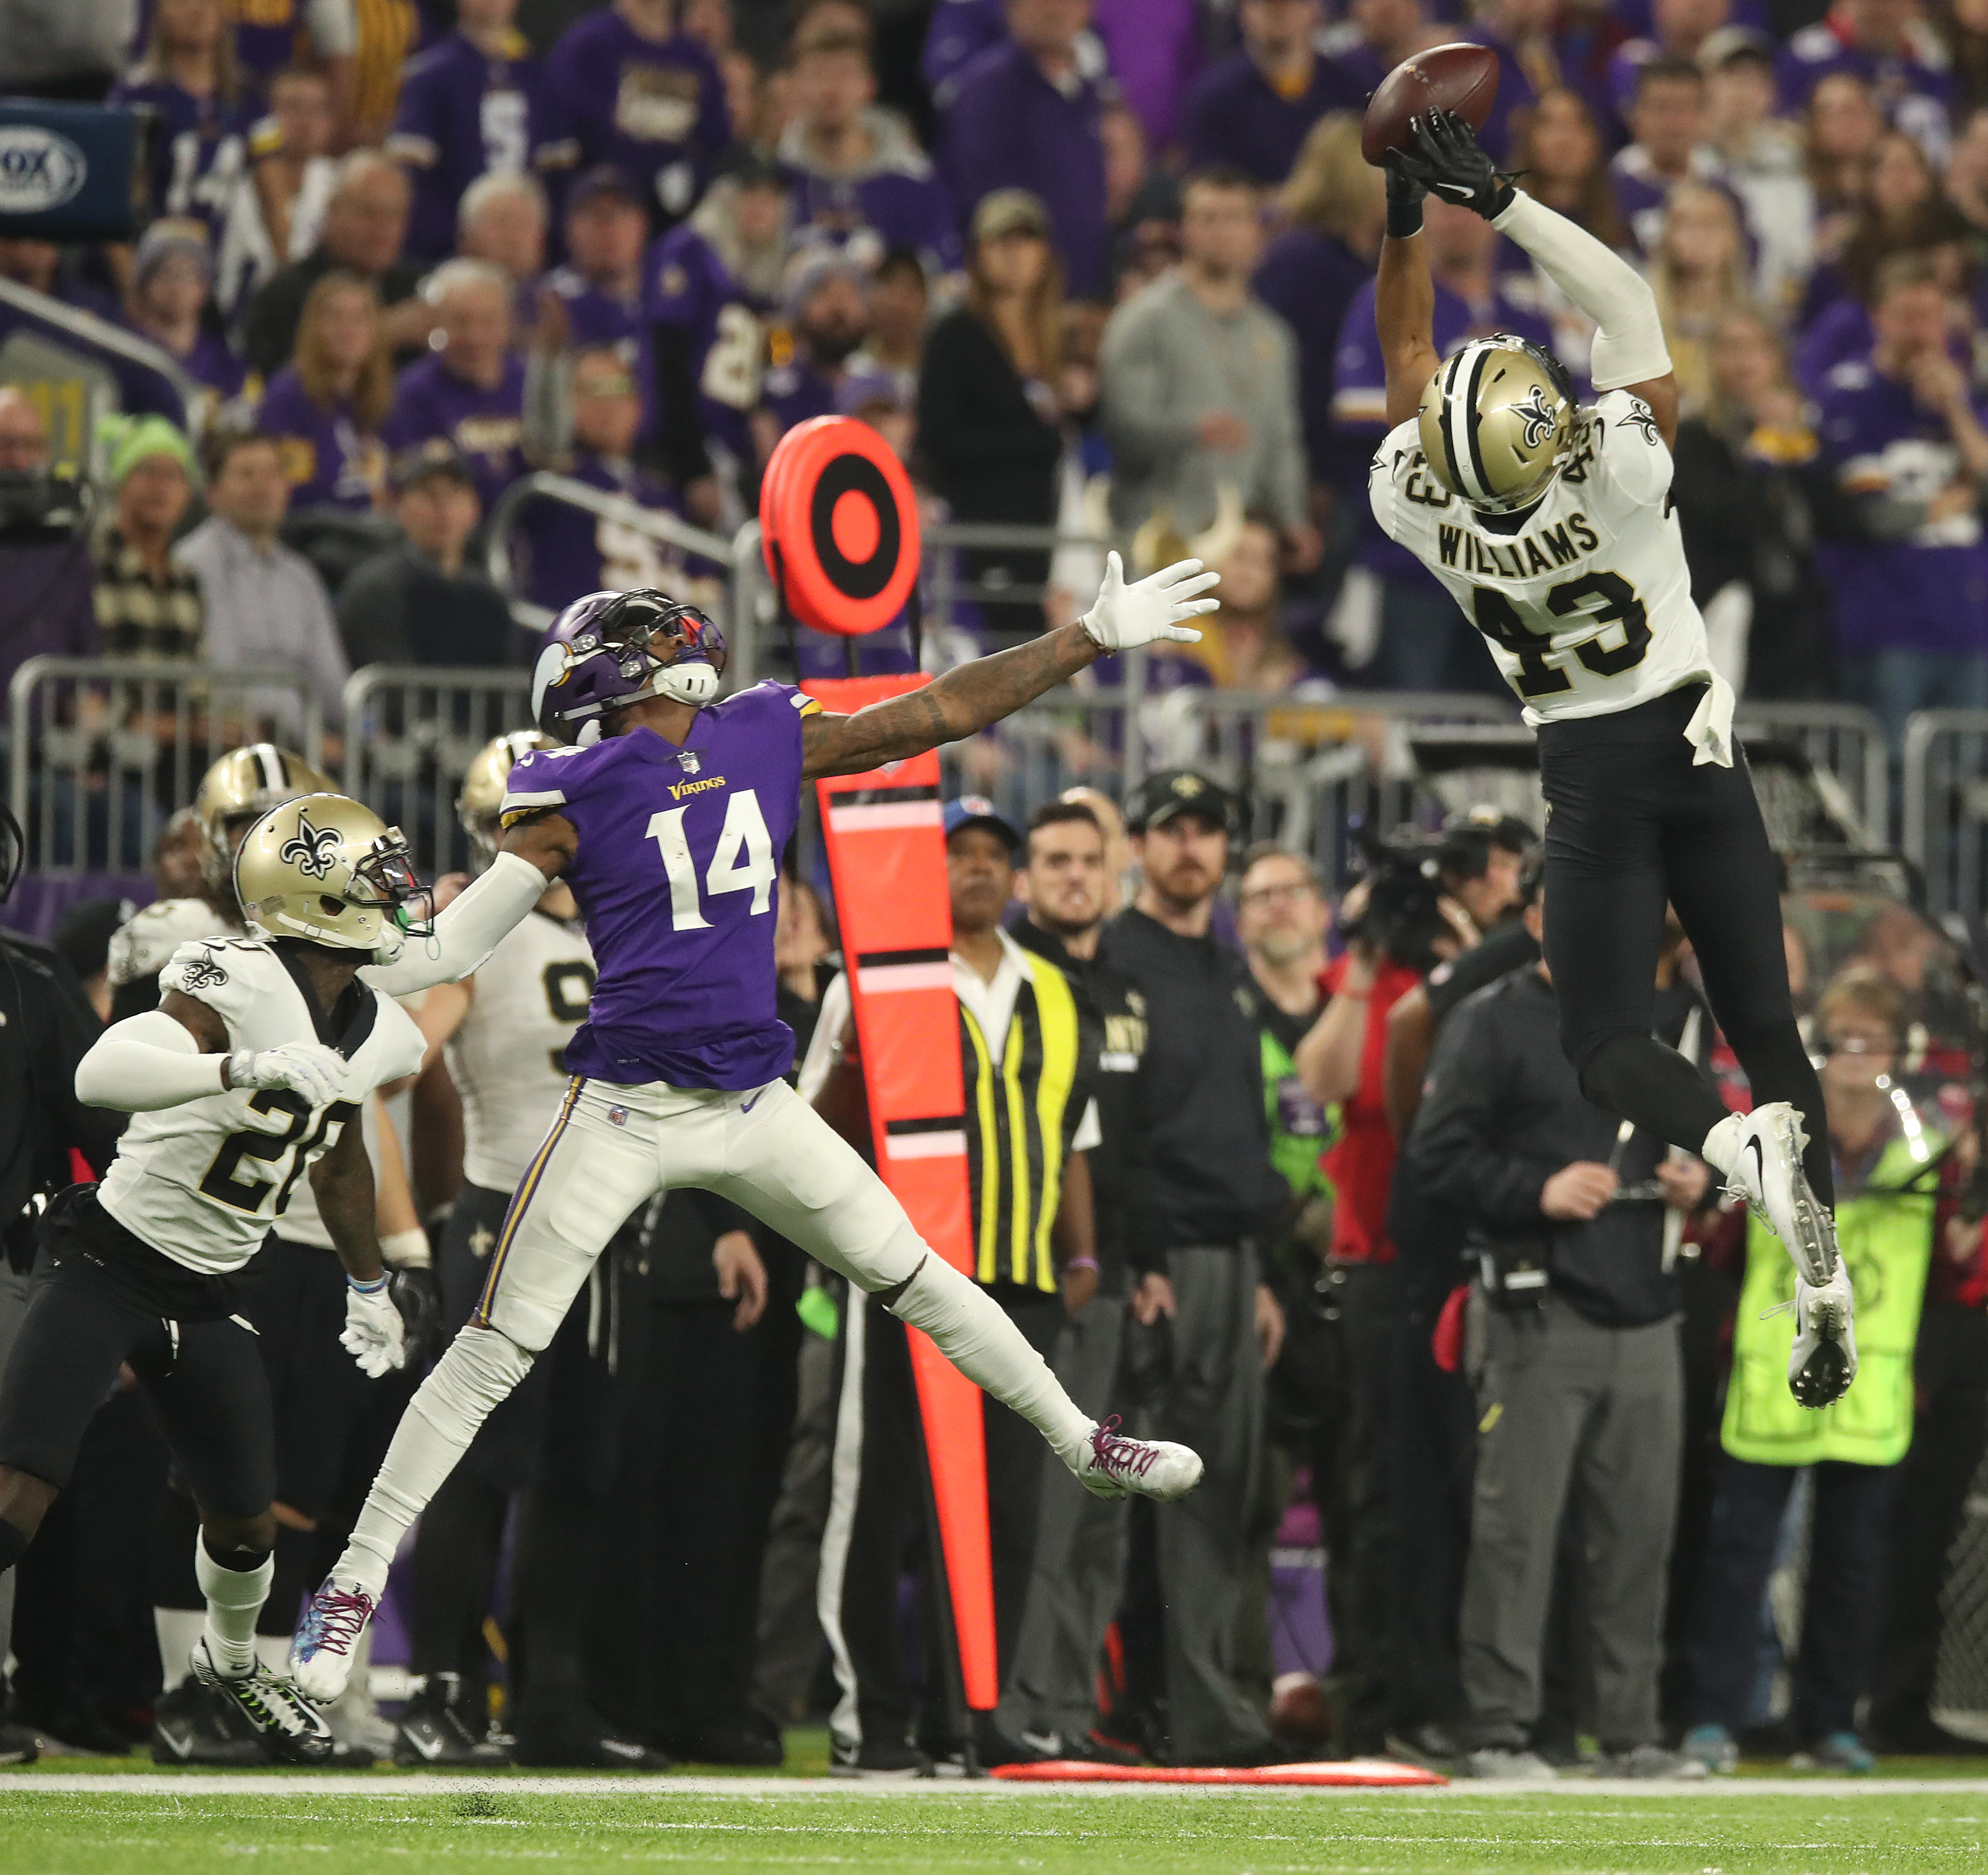 Rookie Saints free safety Marcus Williams went high to intercept a Case Keenum pass in front of Vikings wide receiver Stefon Diggs early in the third quarter. Six plays later, the Saints went 30 yards for their second touchdown. ] JERRY HOLT ï jerry.